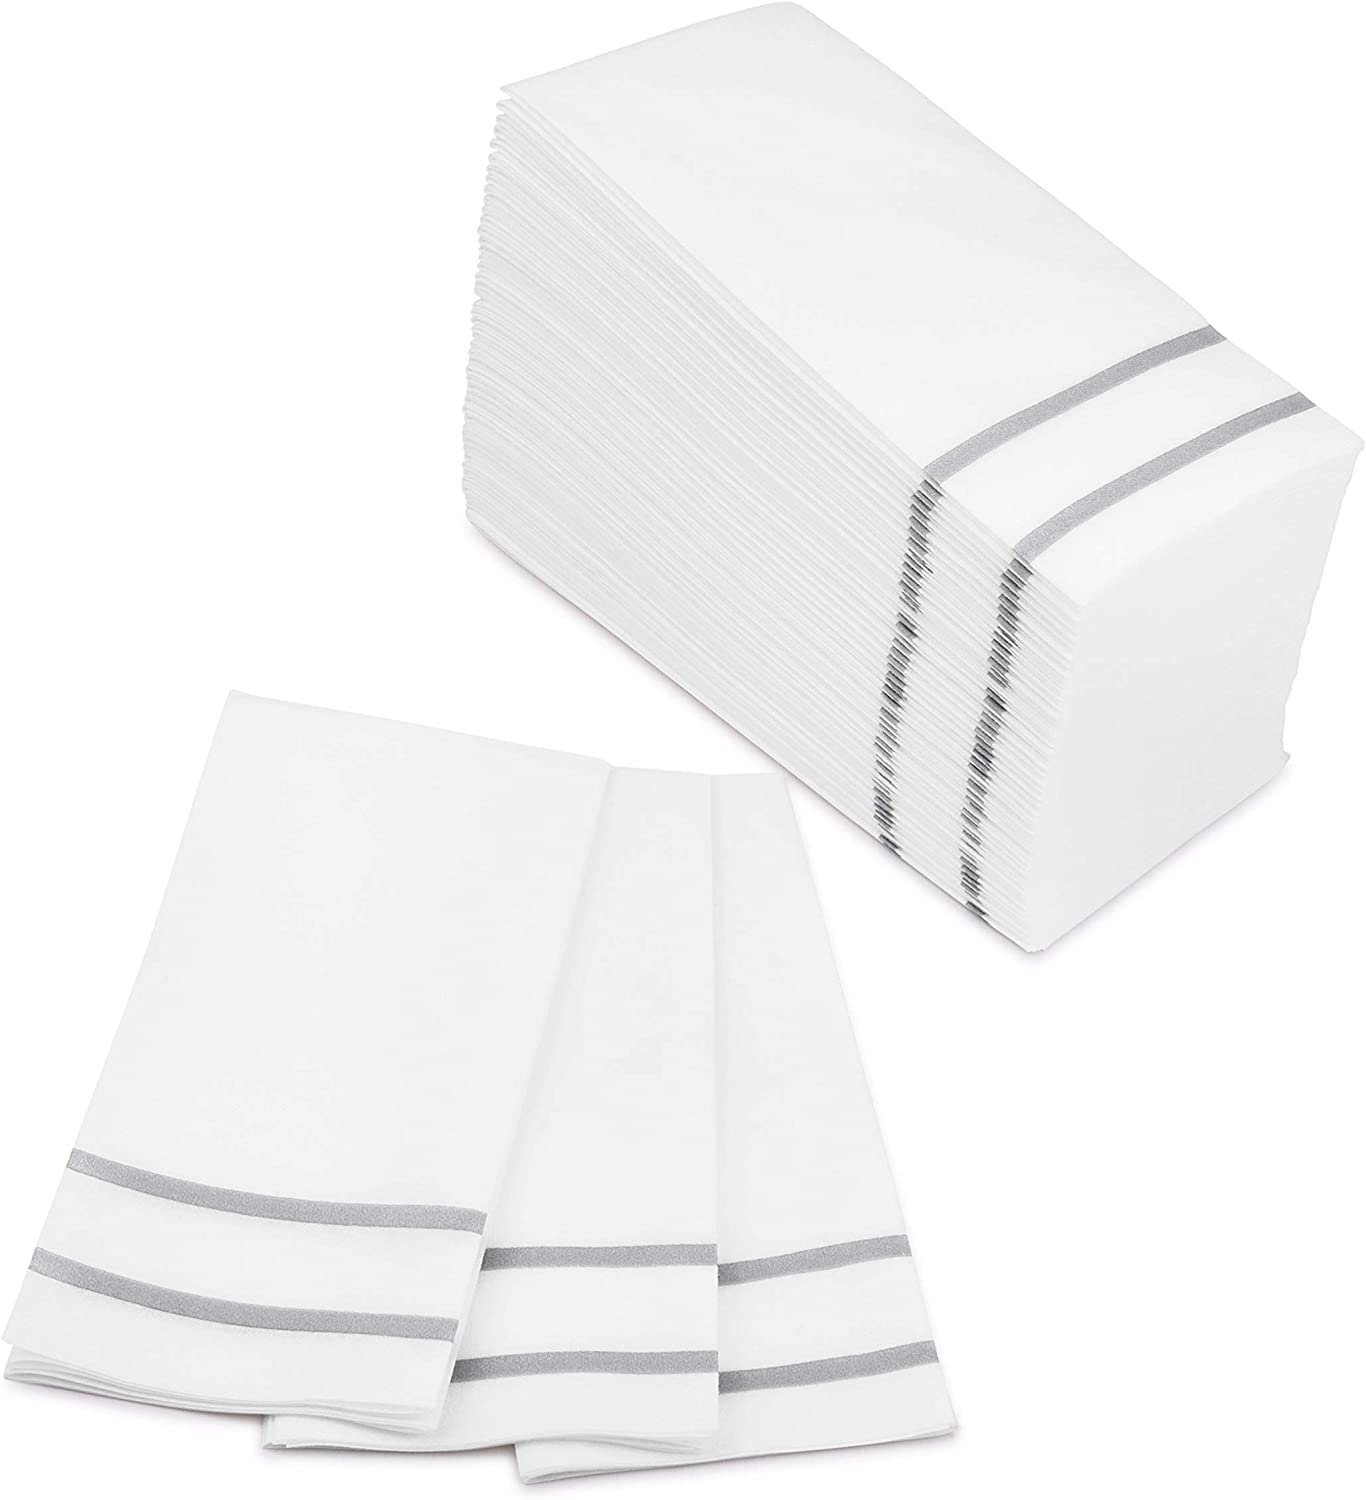 Fete Decorative Hand Towels Disposable, Silver Design 100 Linen-Feel Guest Towels – Formal Dinner, Anniversary, and Wedding Napkins for Tables, Guestrooms, and Restrooms - 8.5x 4-Inches Folded,